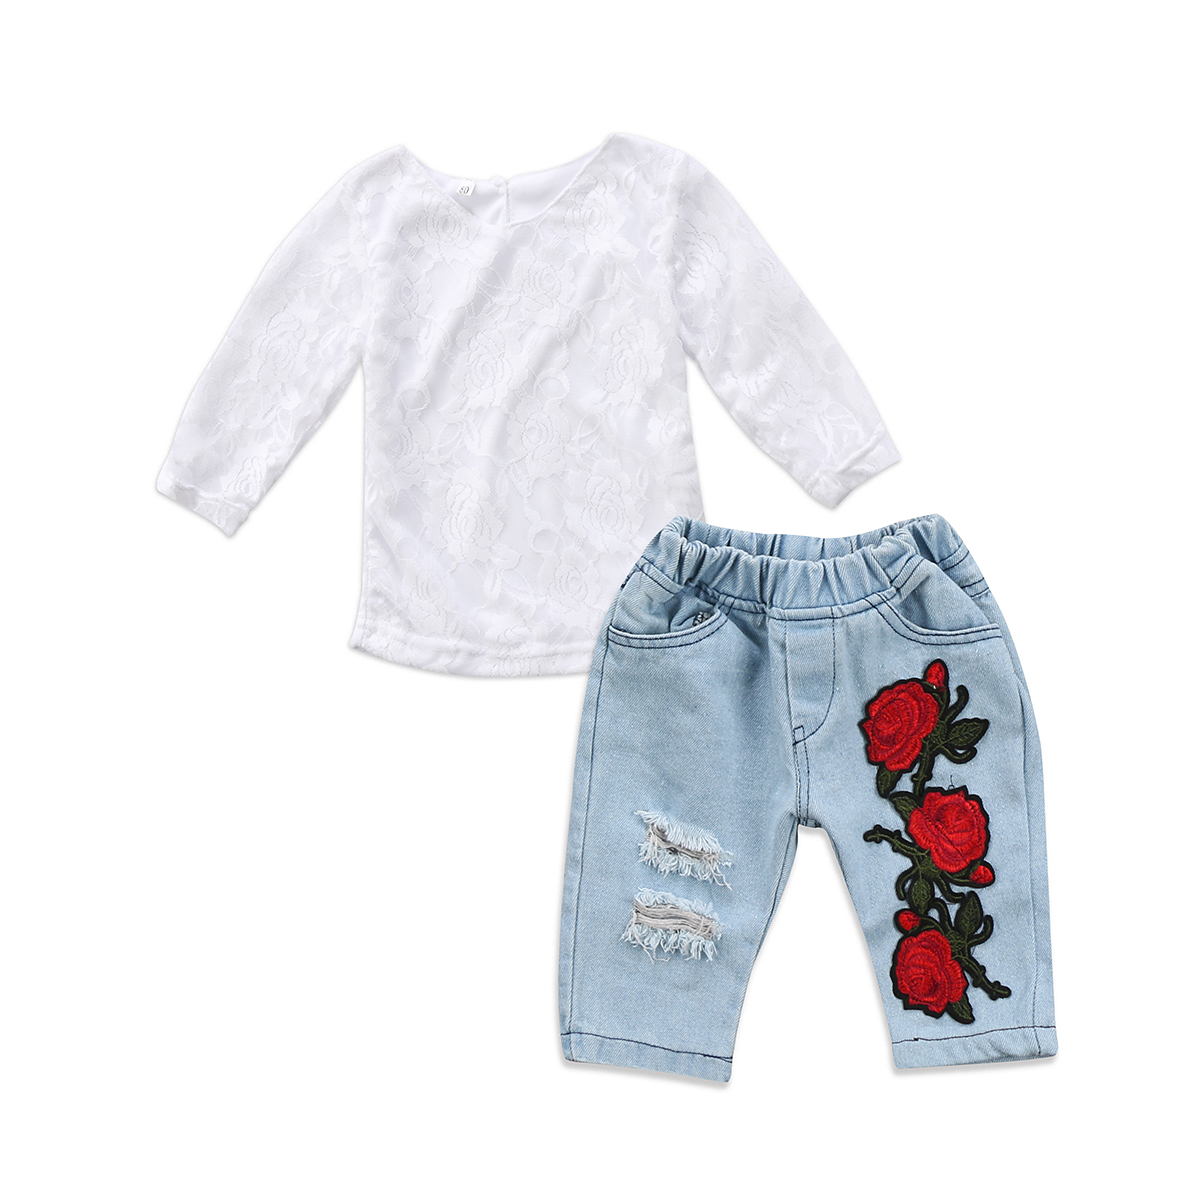 Girls Lace Flower Outfits Newborn Kids Baby Girl White Lace Tops Shirts 3D Flower Denim Pants Ripped Jeans Hot Kids Clothes Set off shoulder tops t shirts denim pants hole jeans 3pcs outfits set clothing fashion baby kids girls clothes sets